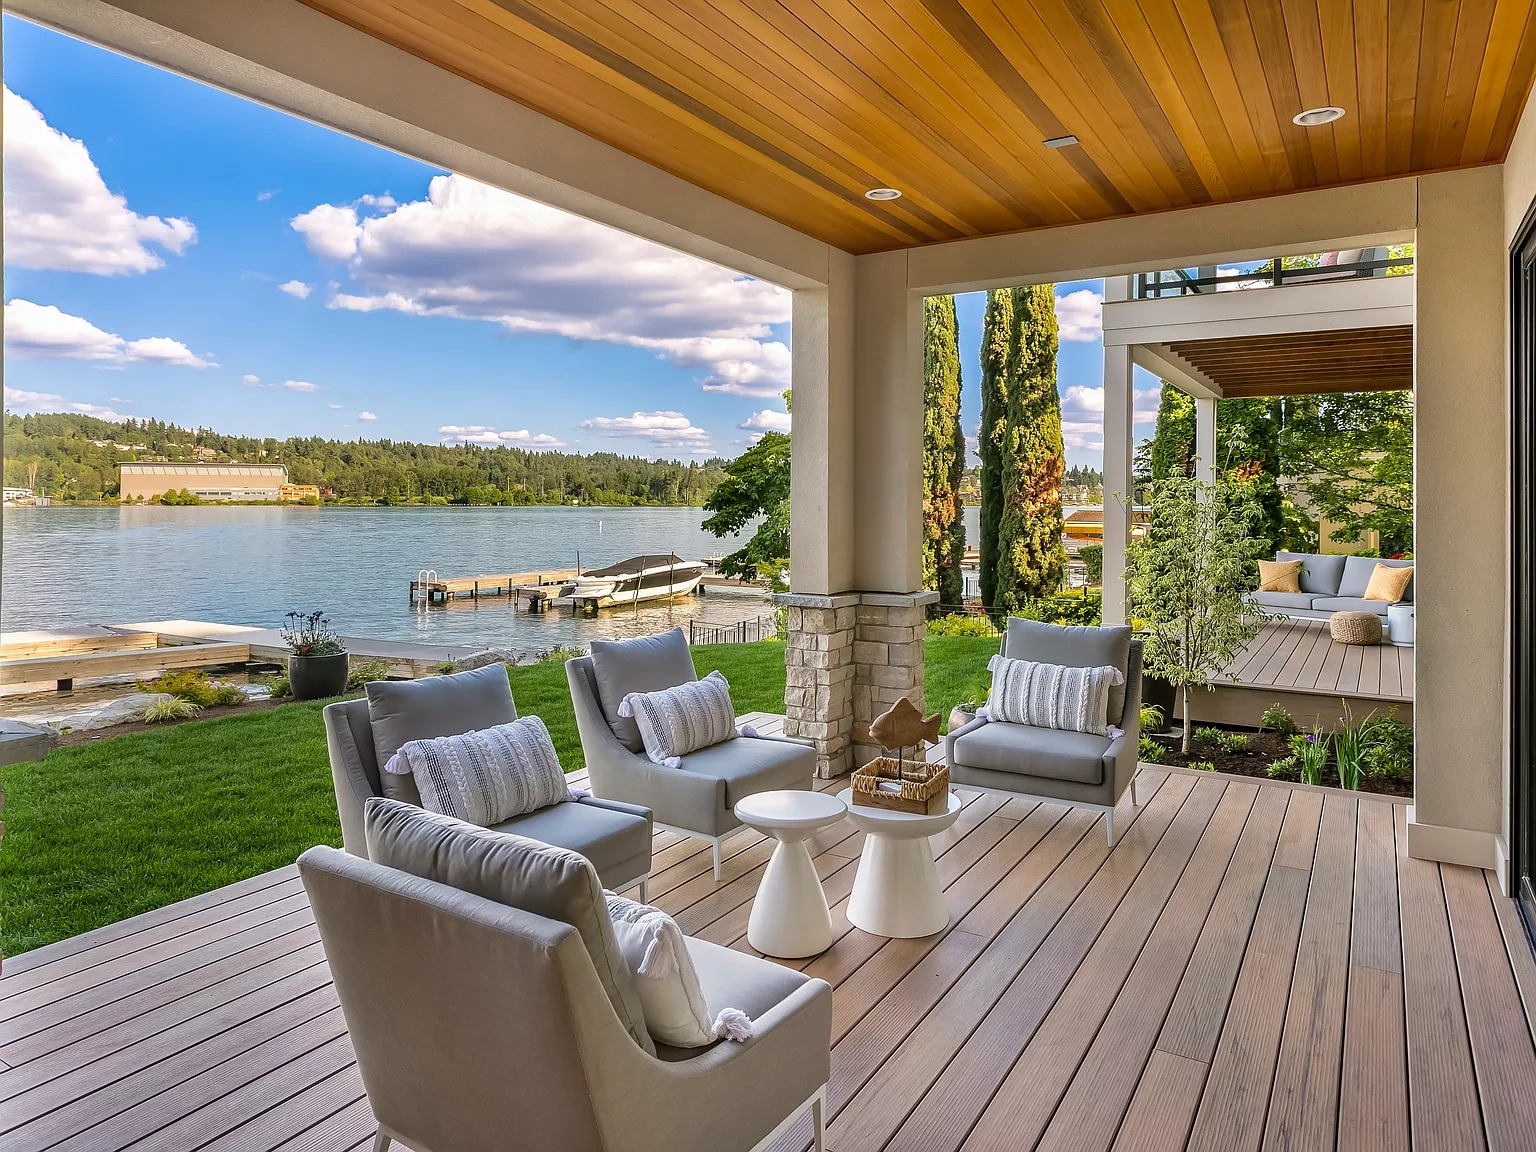 6922 96th Ave SE, Mercer Island, WA 98040 - $6,550,000 home for sale, house images, photos and pics gallery